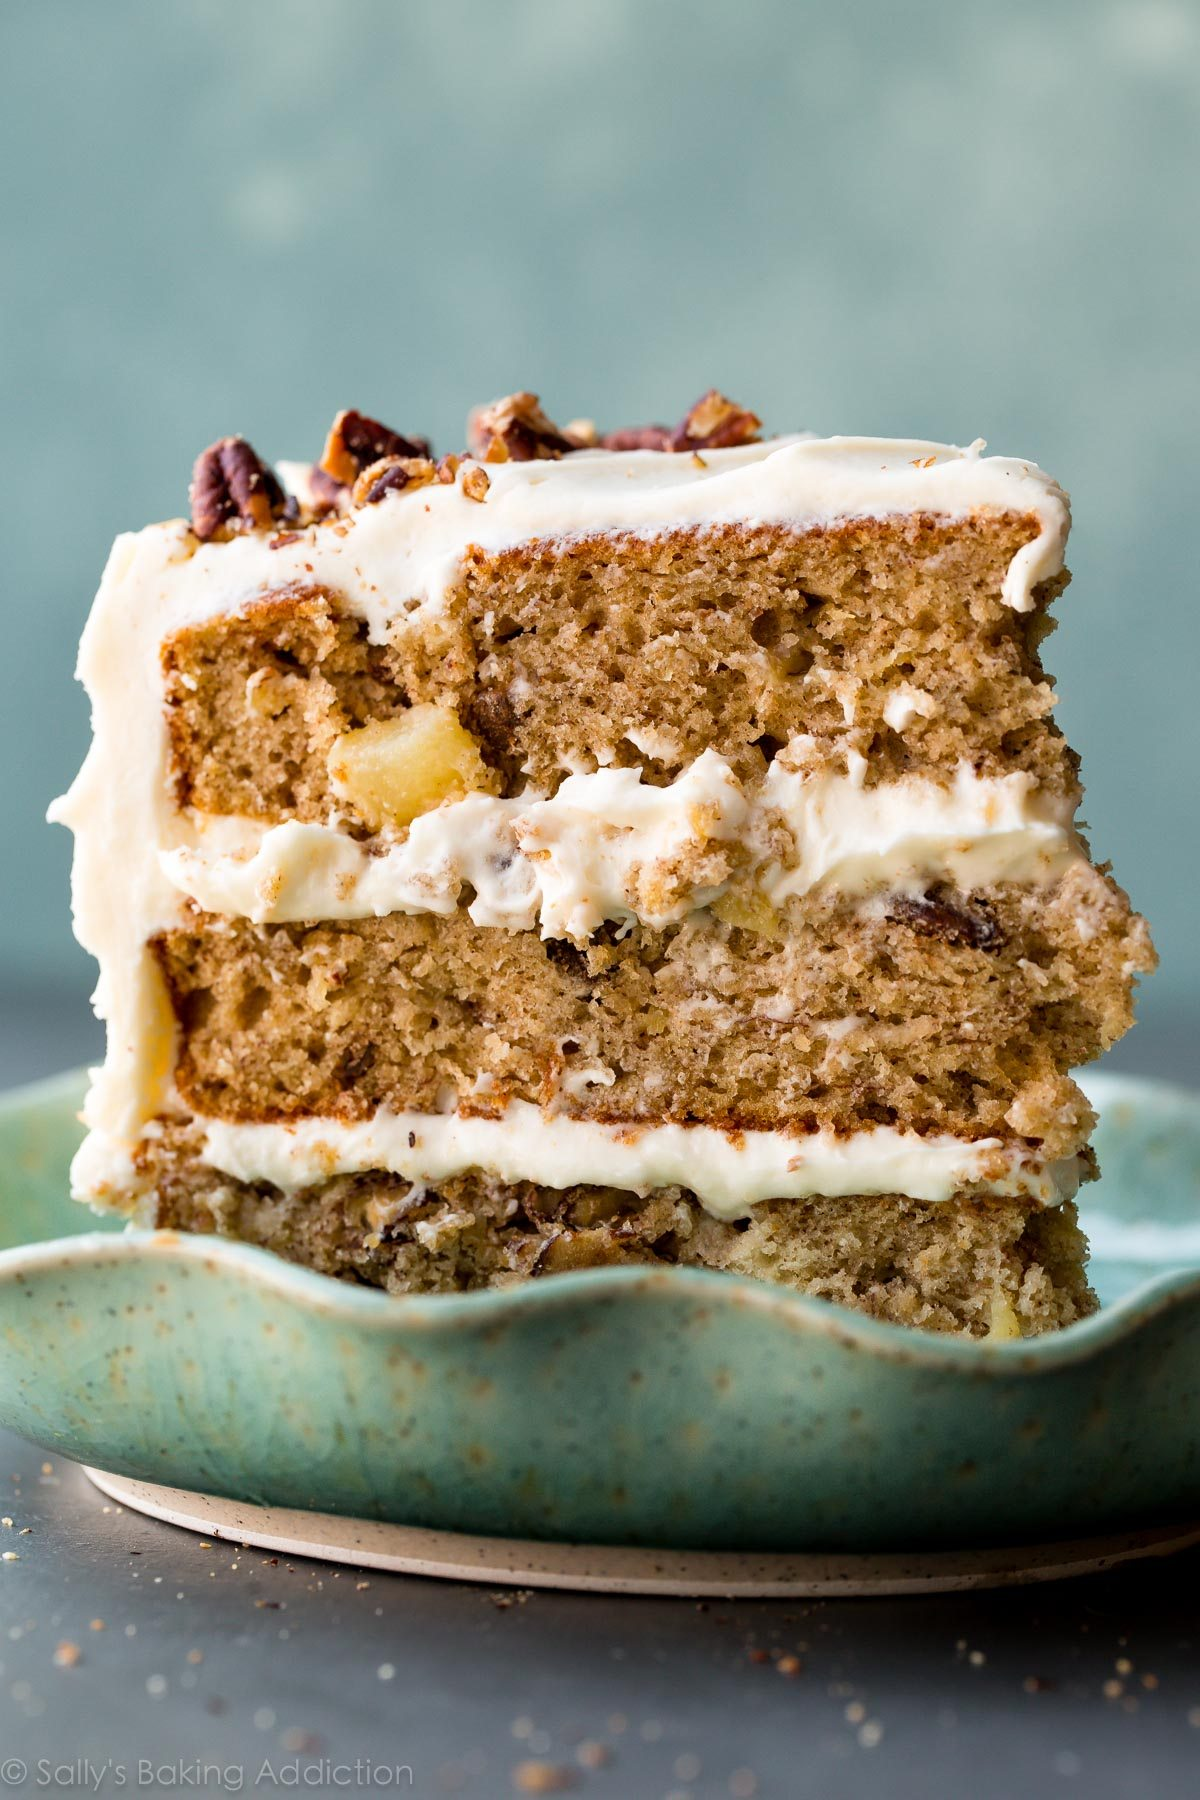 Hummingbird cake on sallysbakingaddiction.com